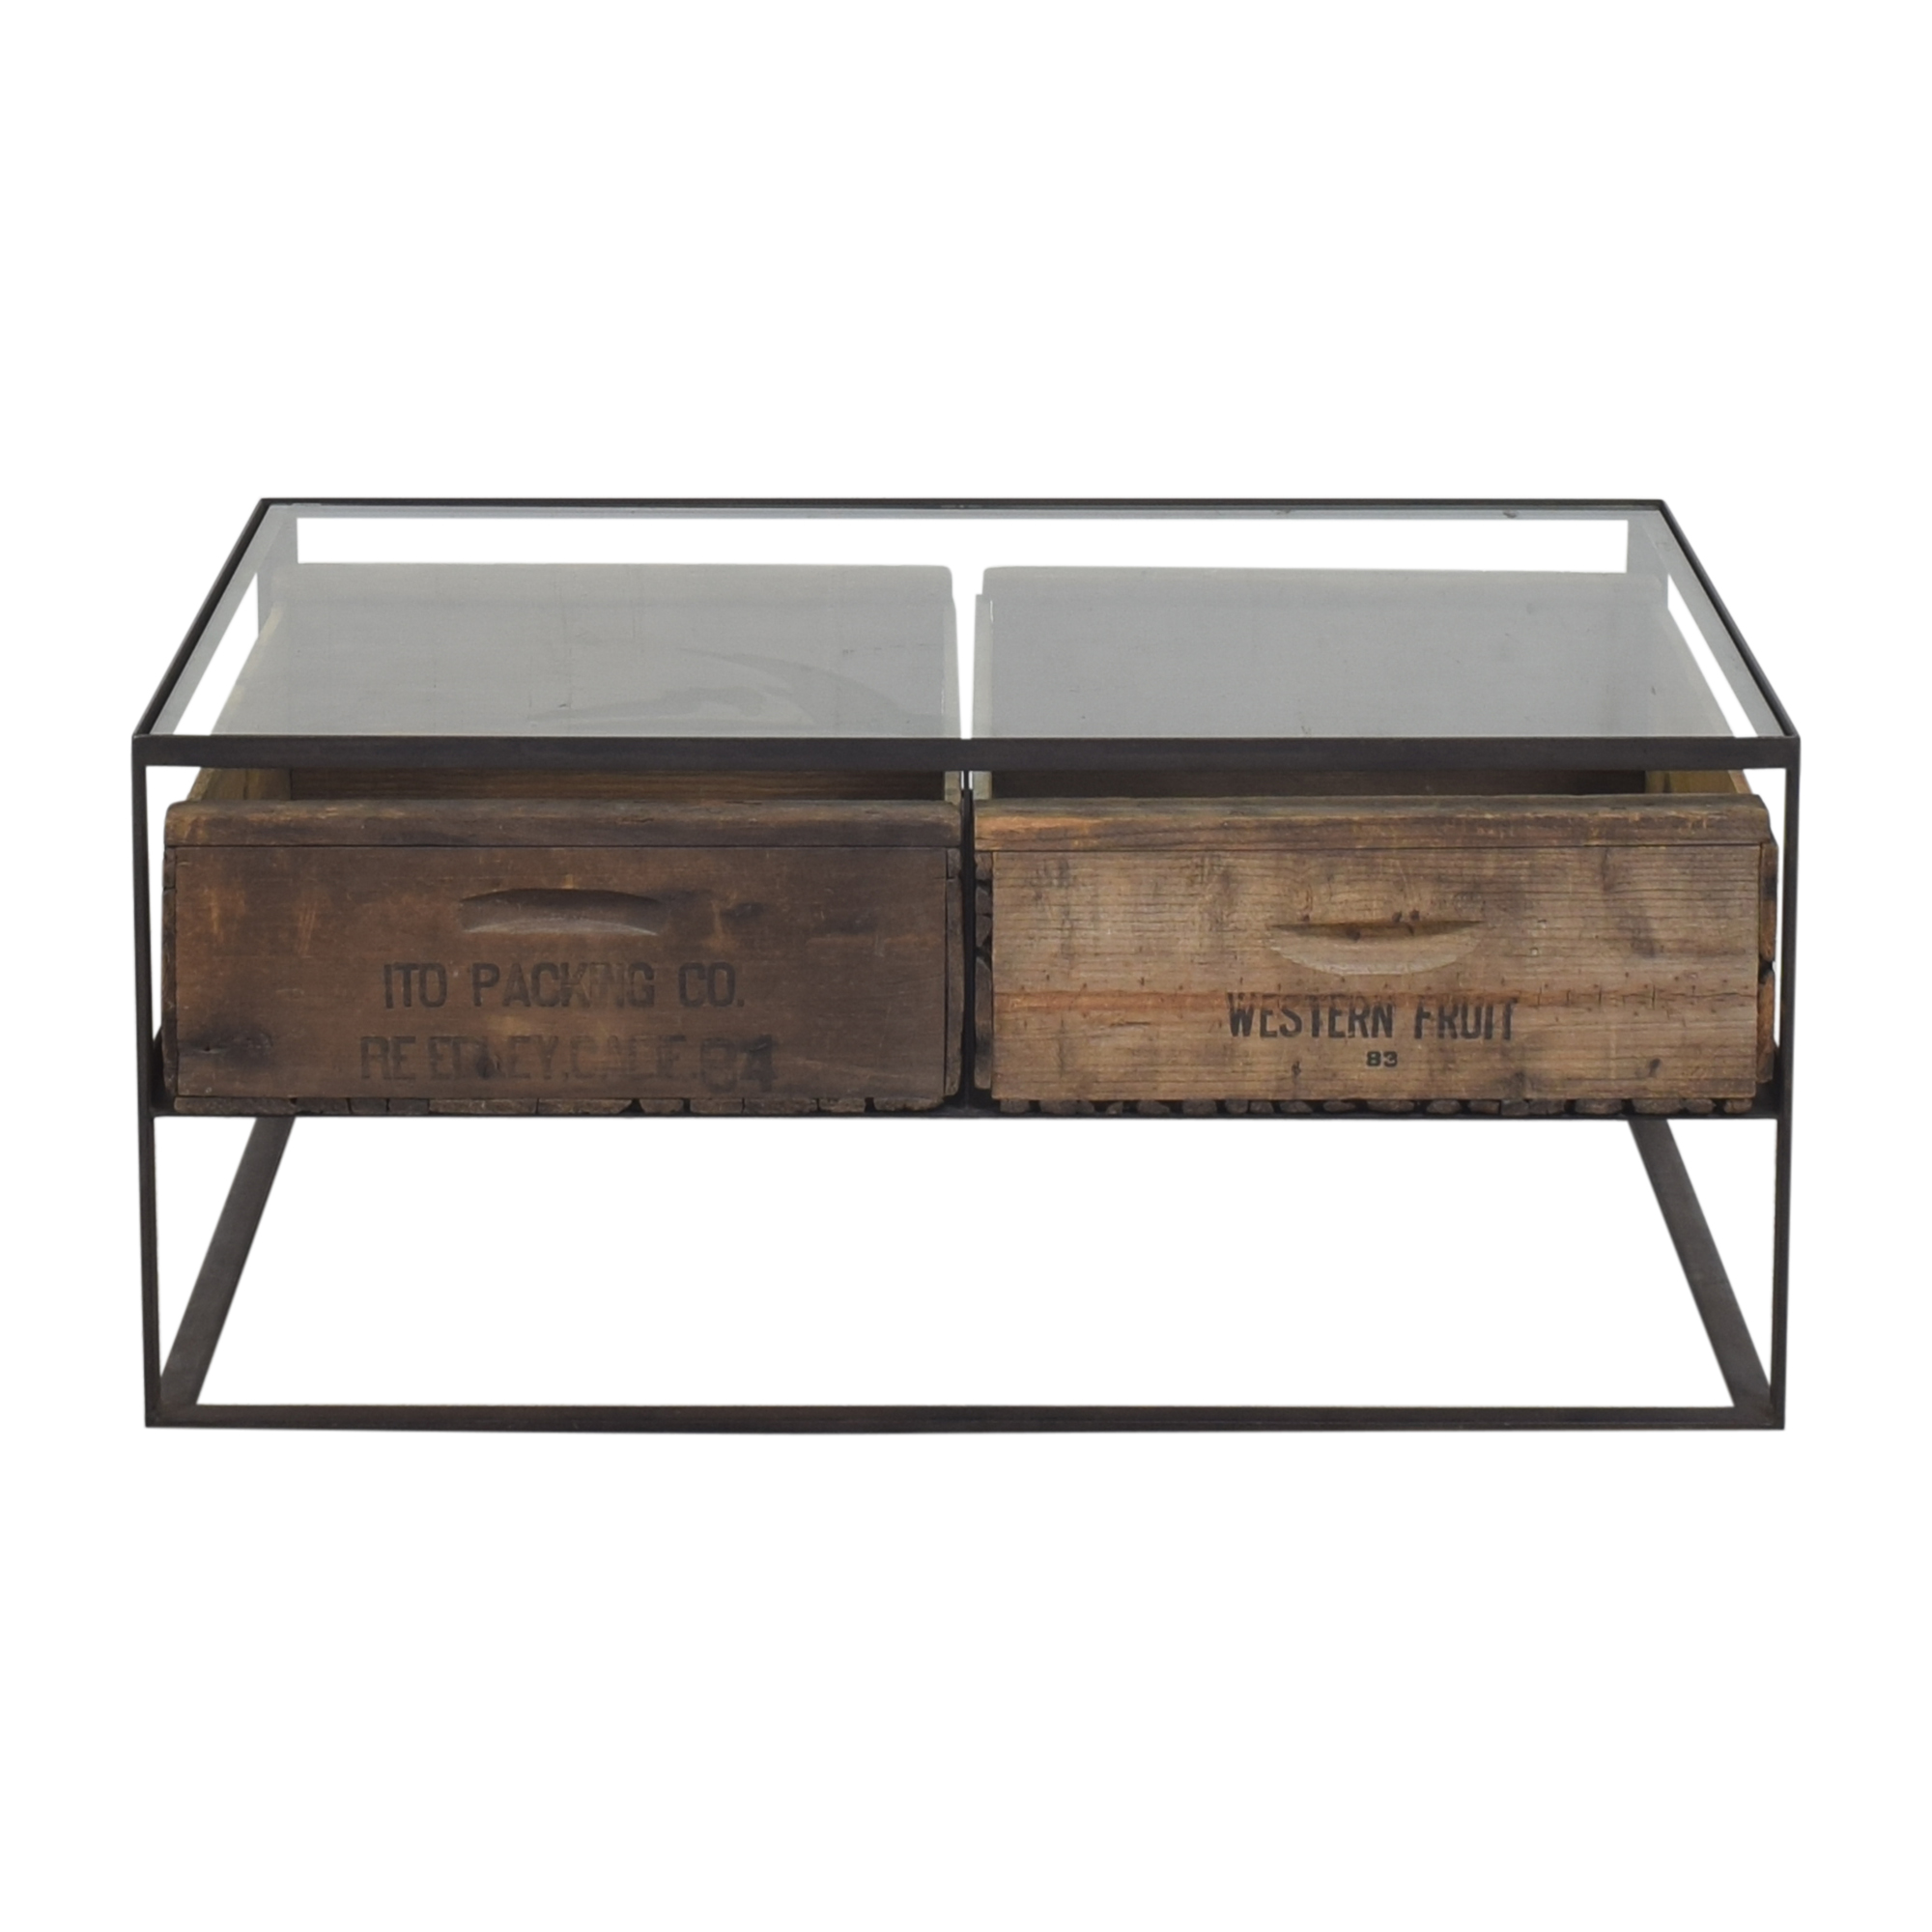 shop ABC Carpet & Home ABC Carpet & Home Mason Two Crate Coffee Table online